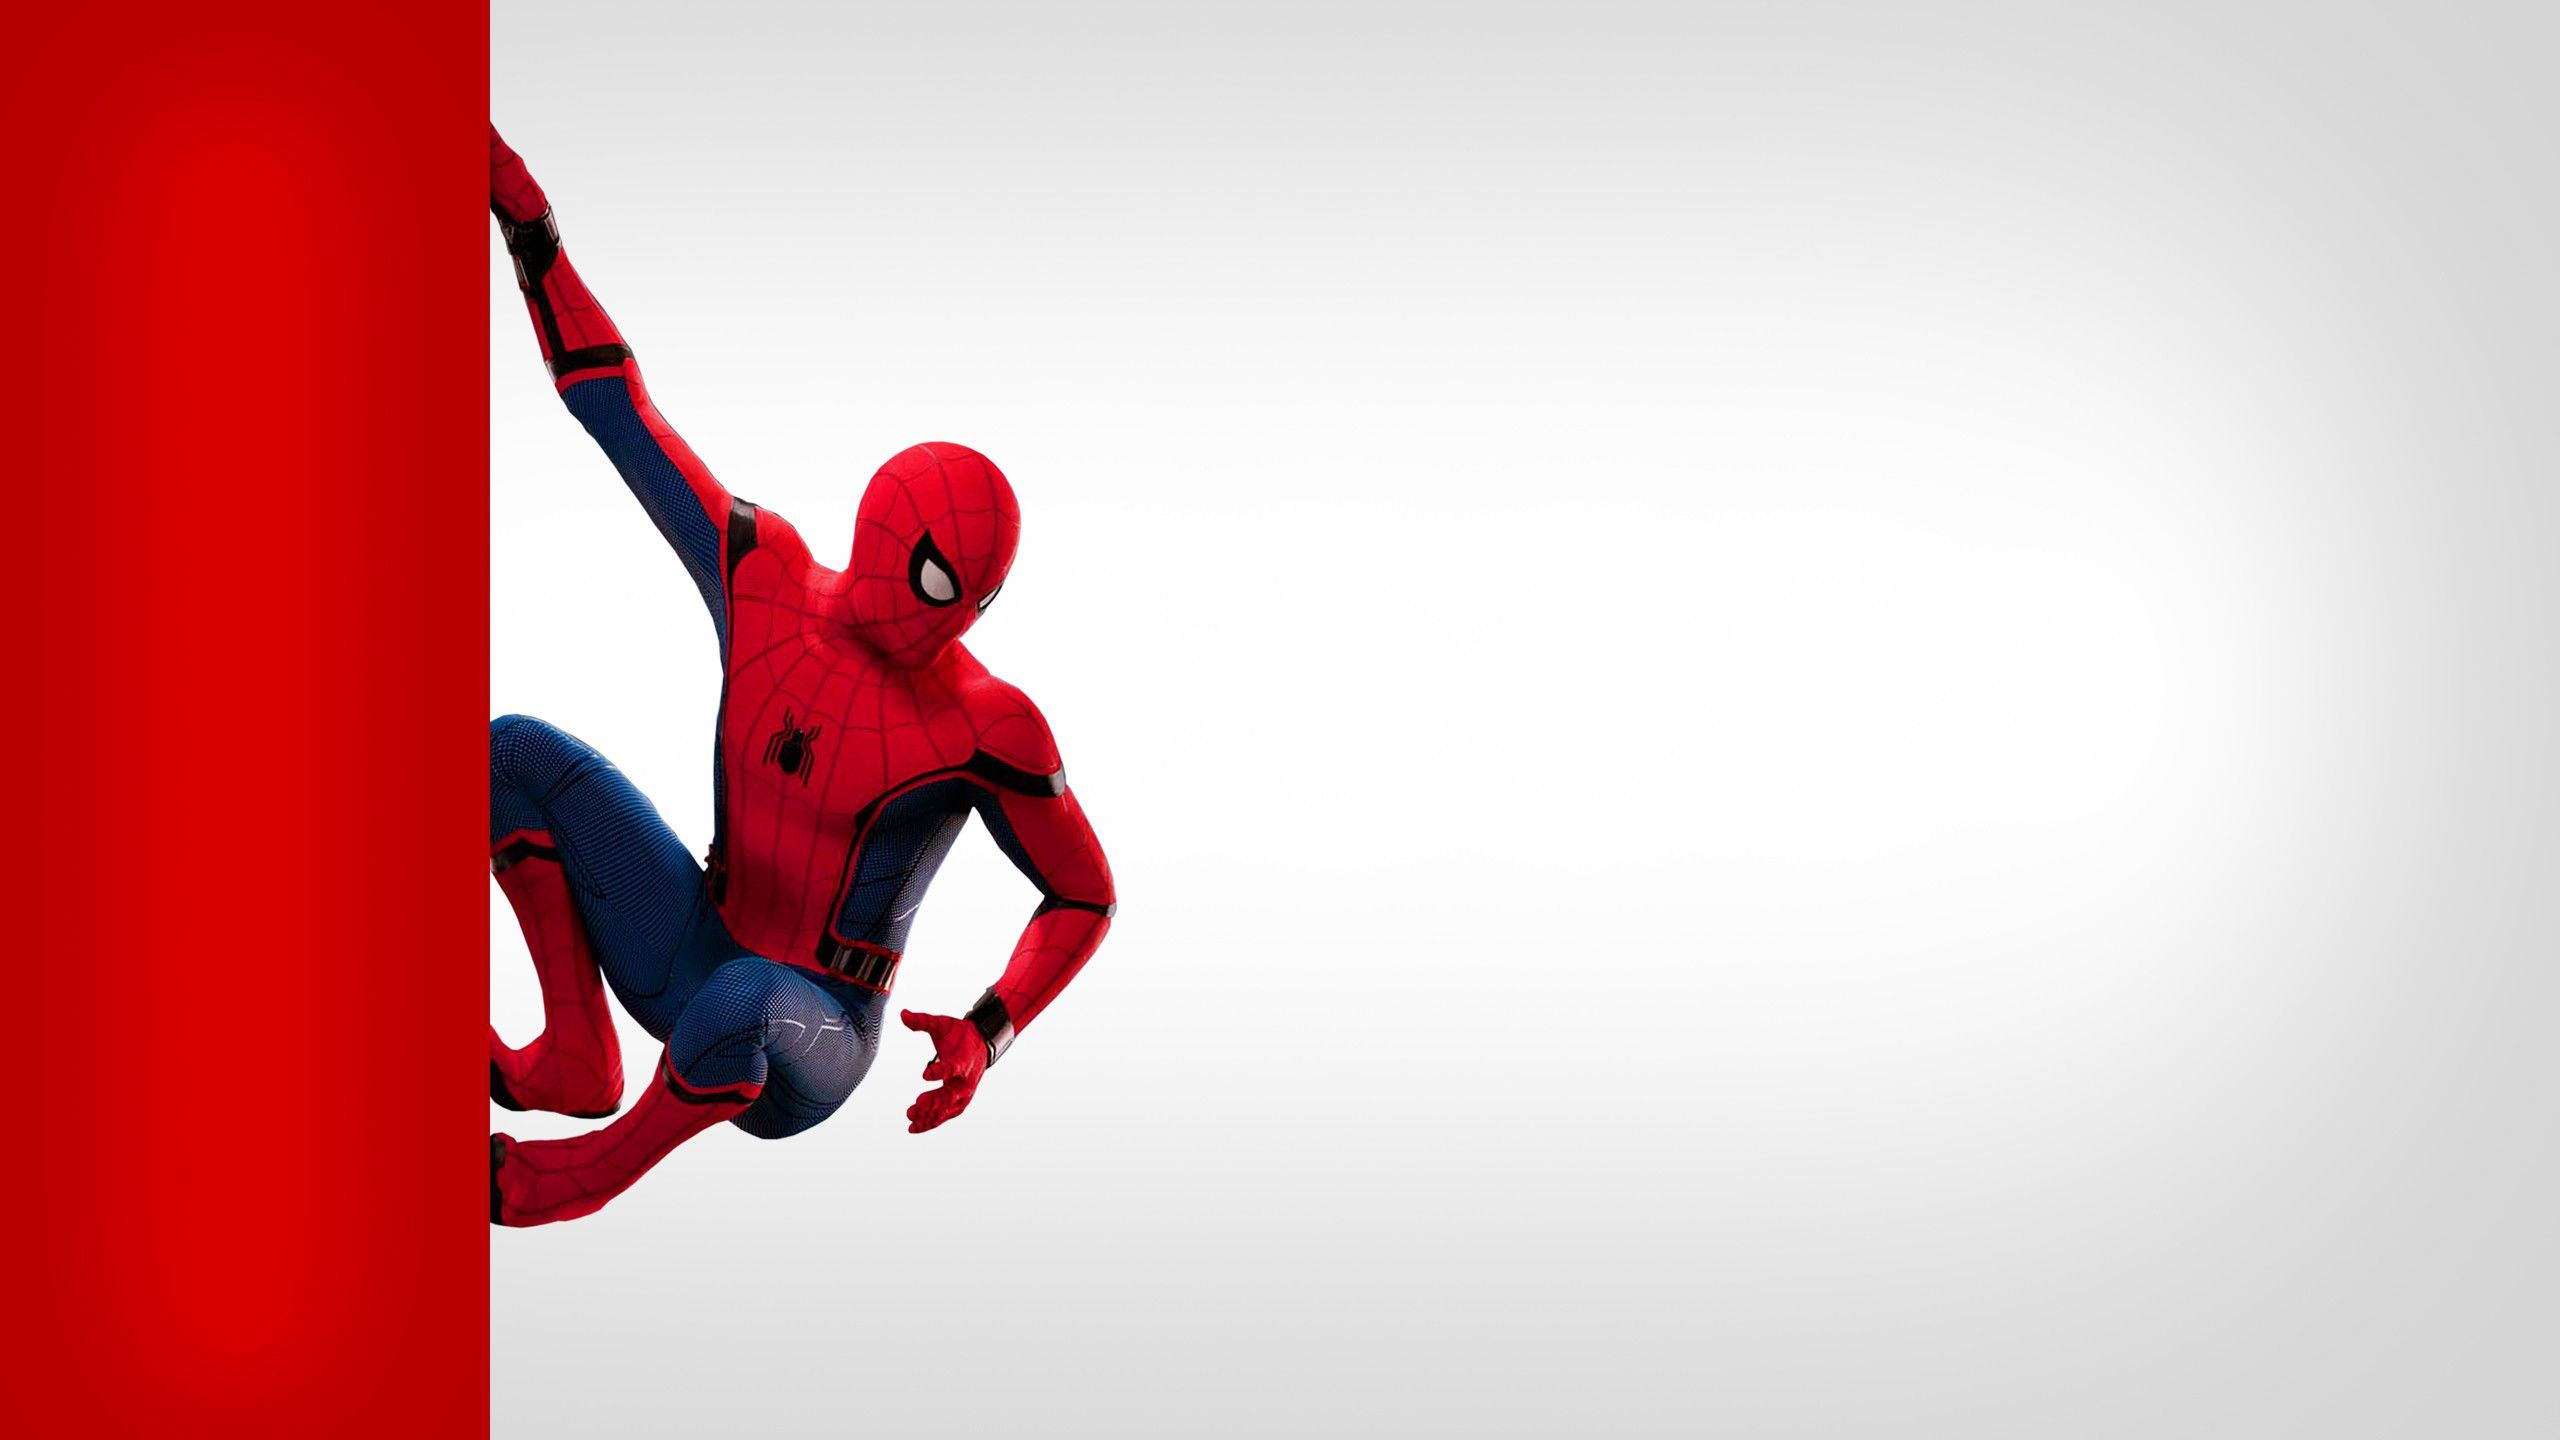 Spider Man Laptop Wallpapers Top Free Spider Man Laptop Backgrounds Wallpaperaccess Spiderman Laptop Wallpaper Wallpaper